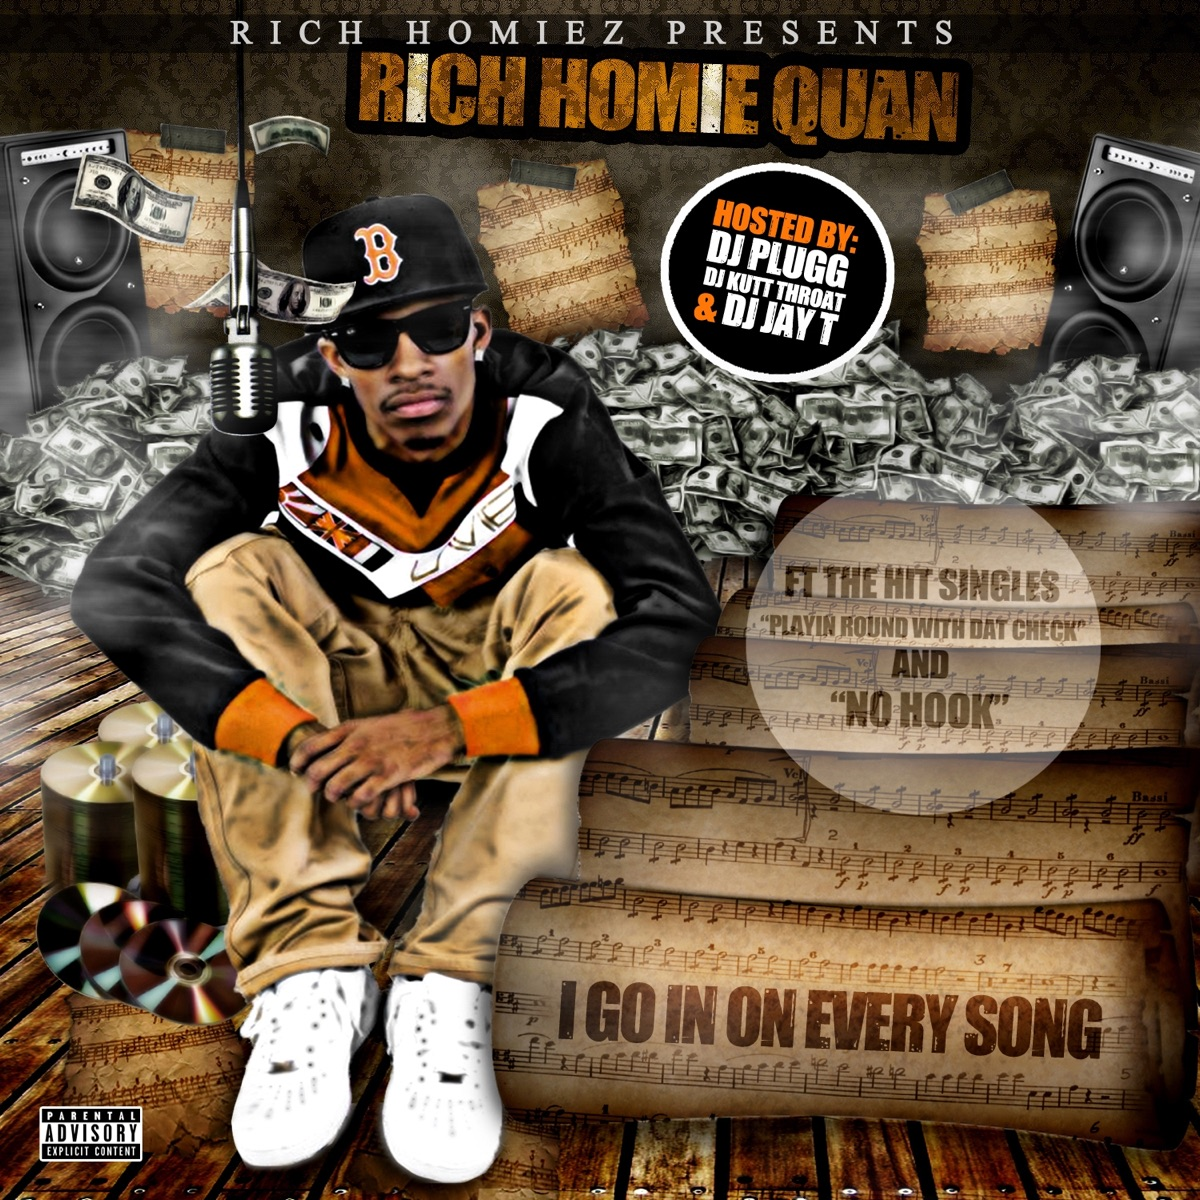 I Go In On Every Song Album Cover by Rich Homie Quan